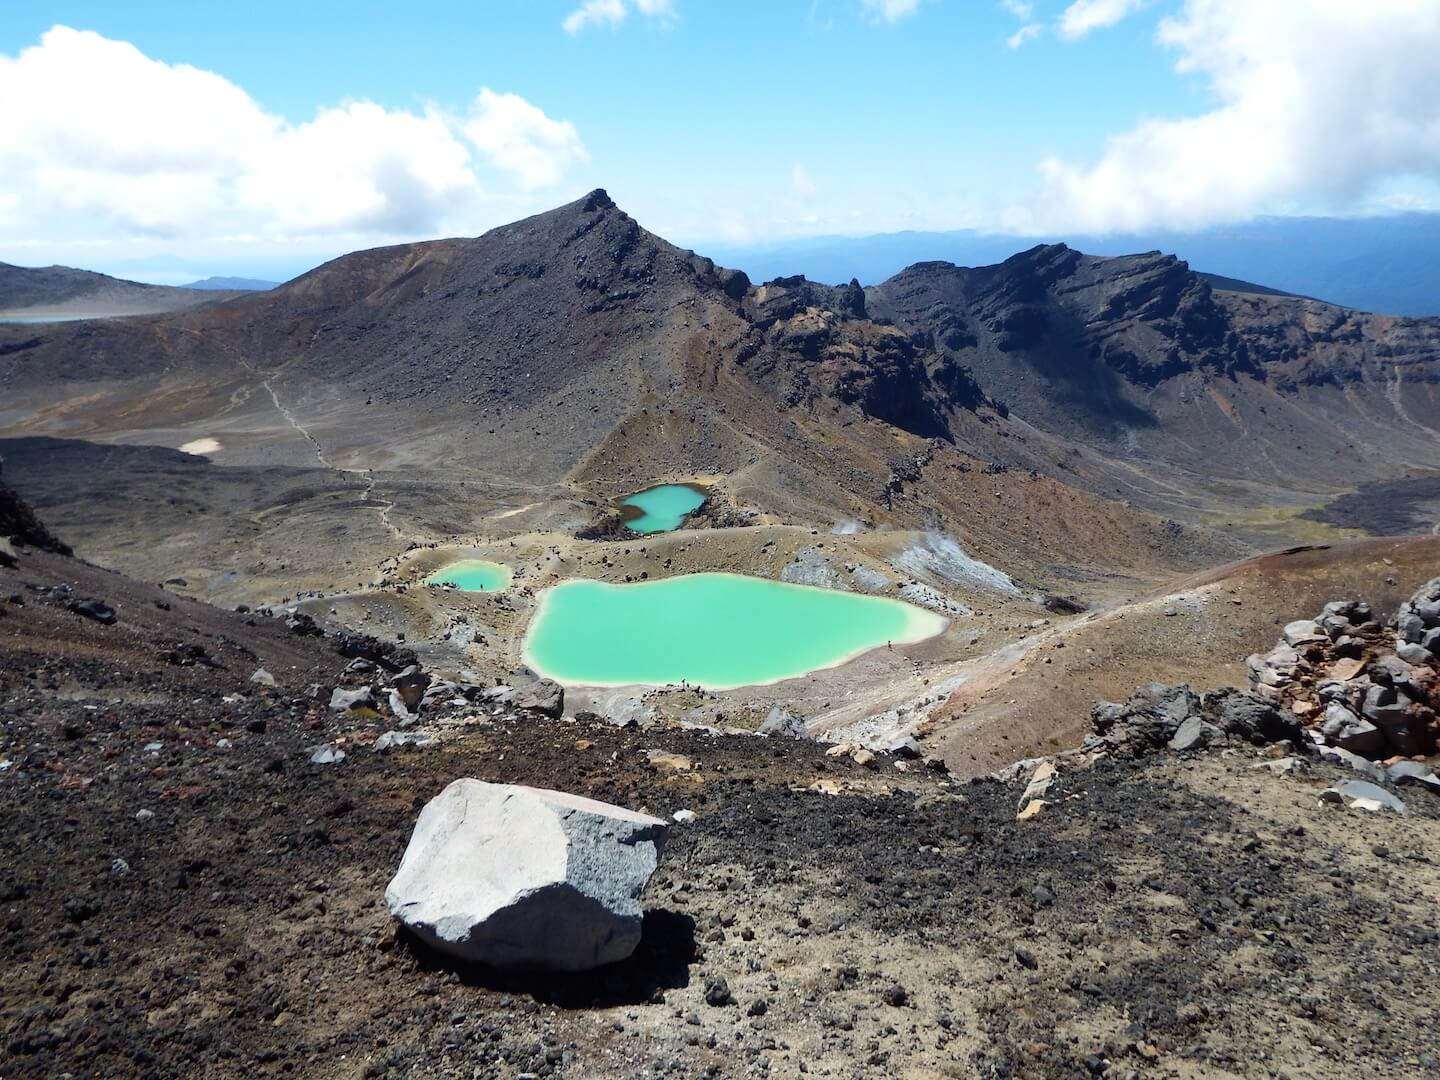 Tongariro Alpine Crossing, New Zealand Hiking Guide | Moon & Honey Travel